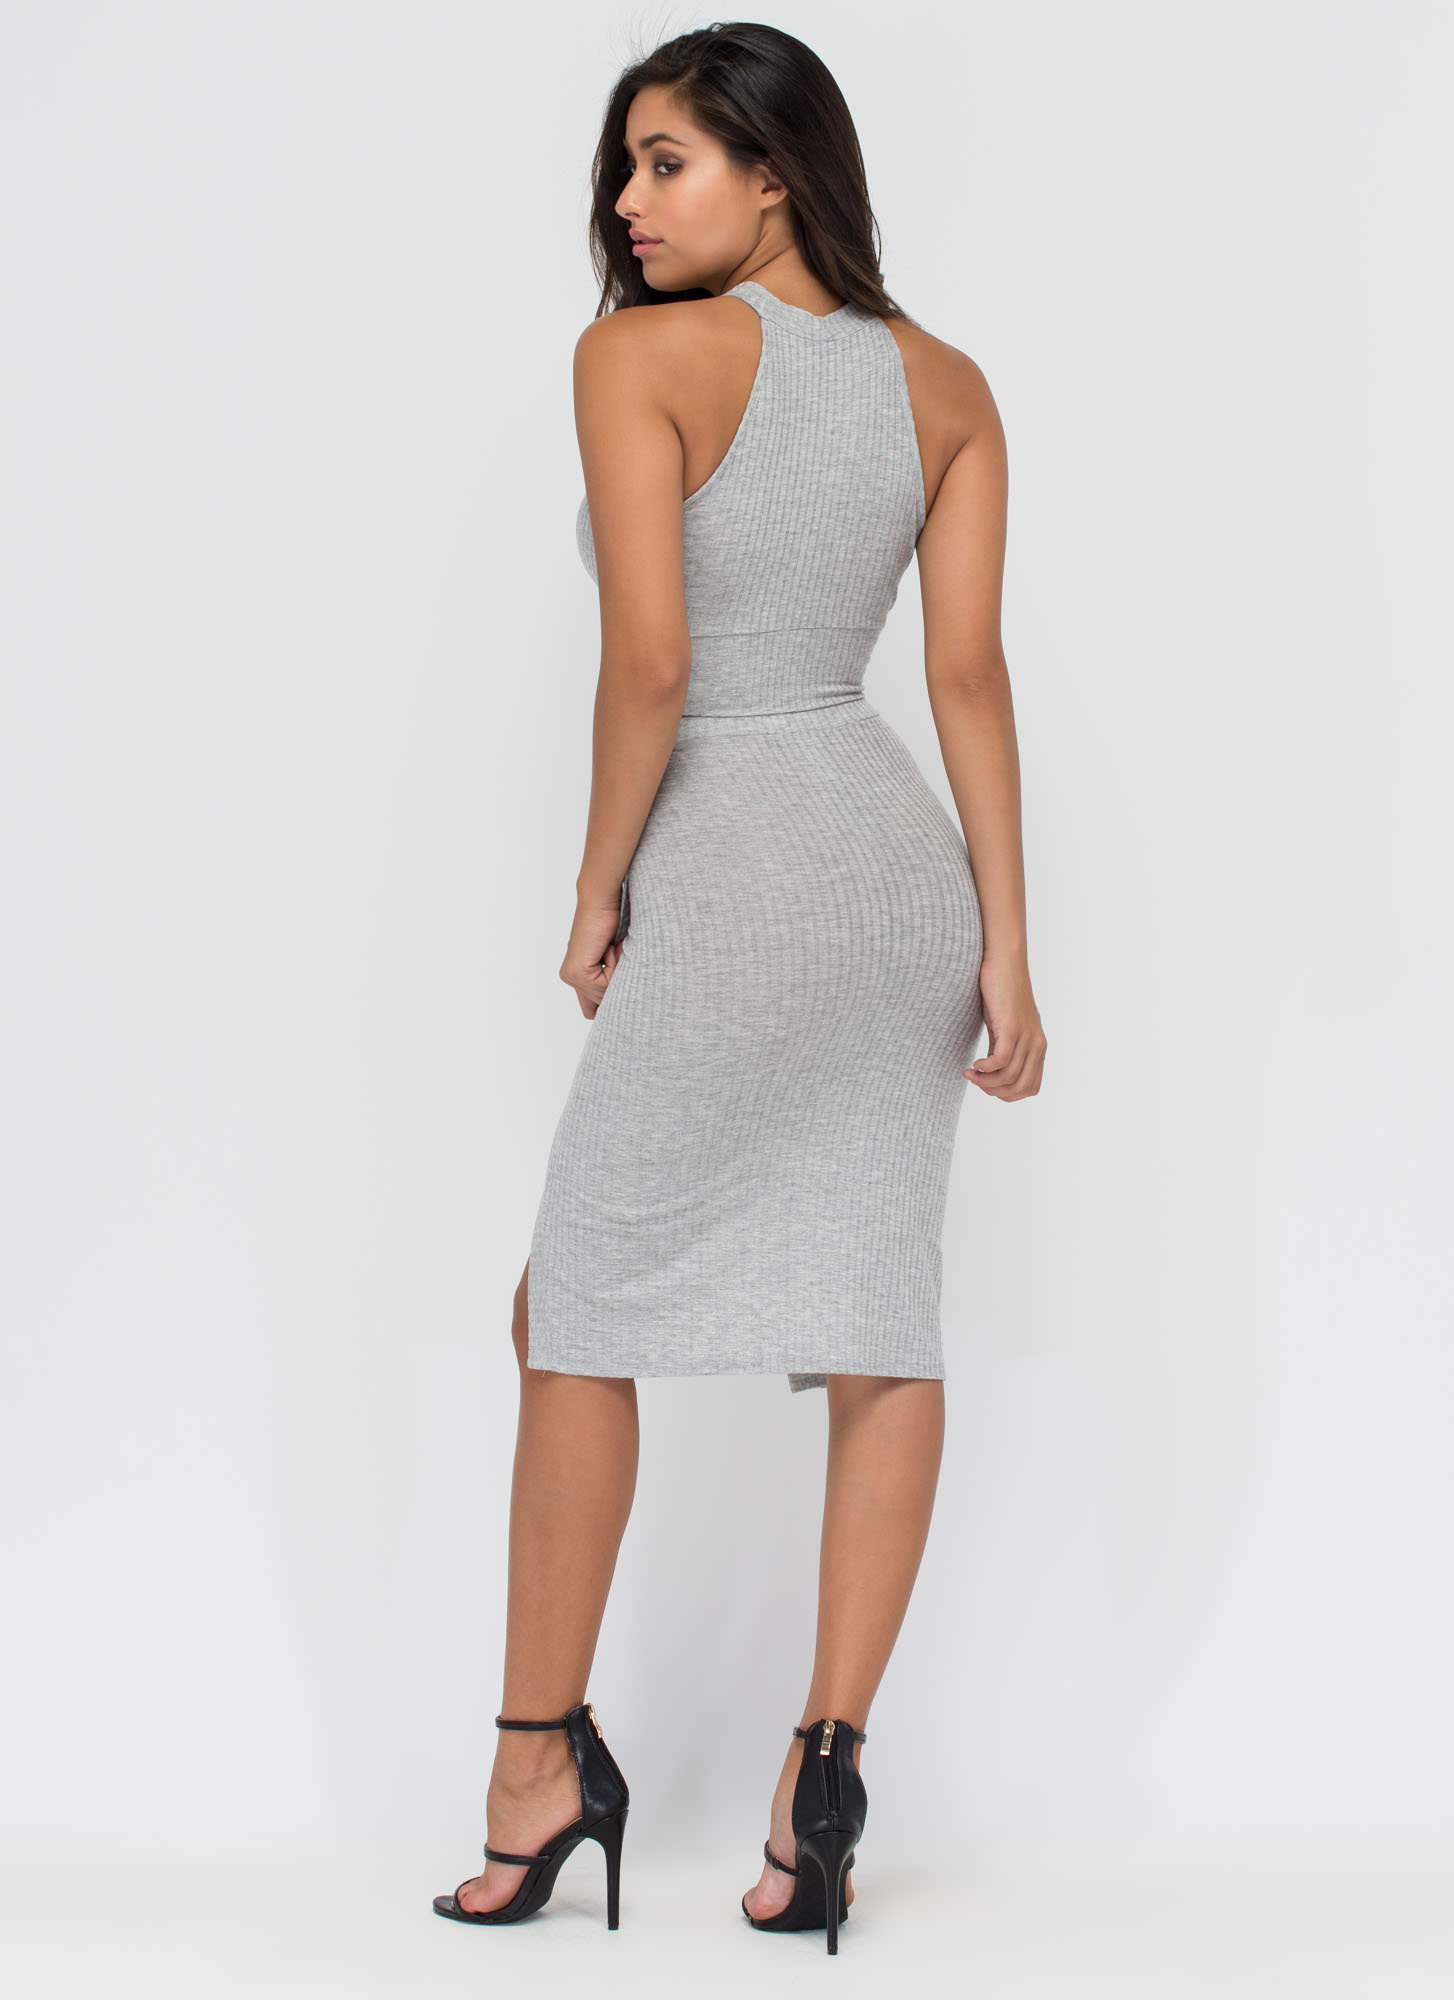 Up Front Ribbed Top And Skirt Set HGREY